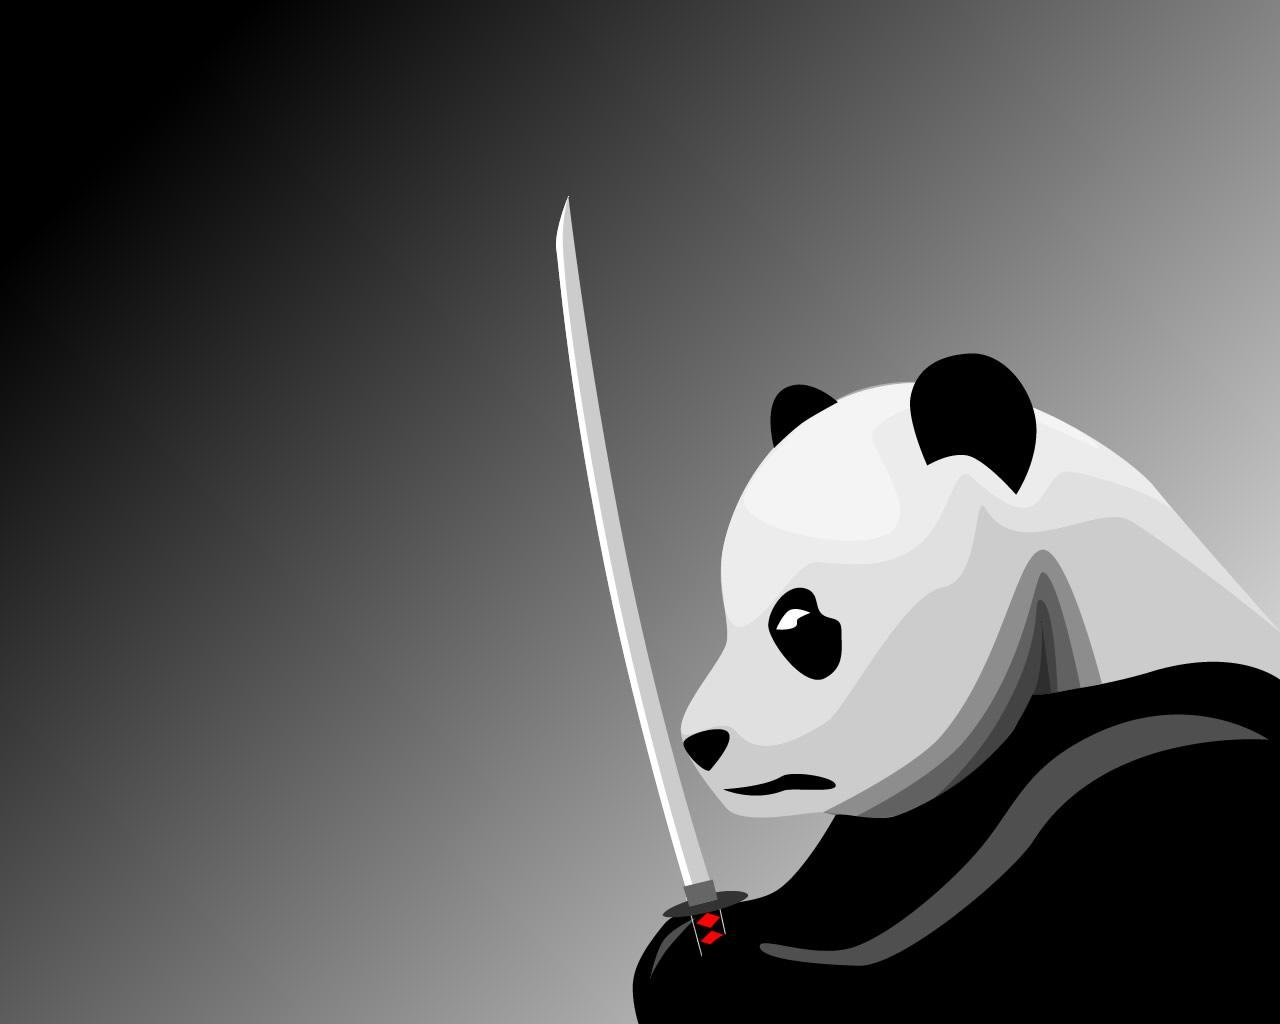 Download hd 1280x1024 Panda desktop background ID:300425 for free